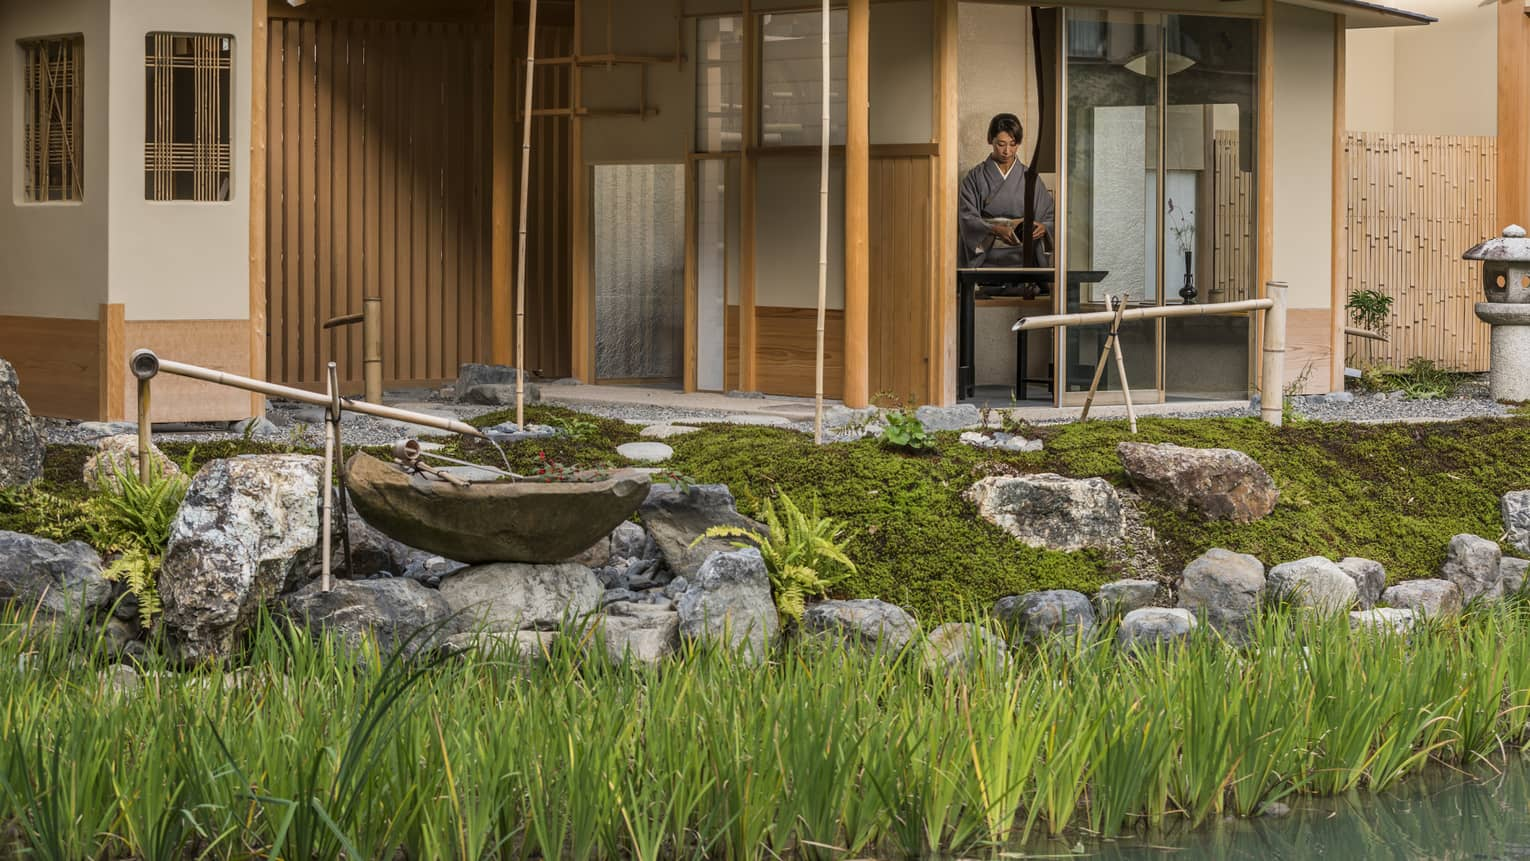 Rock garden, fountain in front of Shakusui tei building, woman in robe behind window